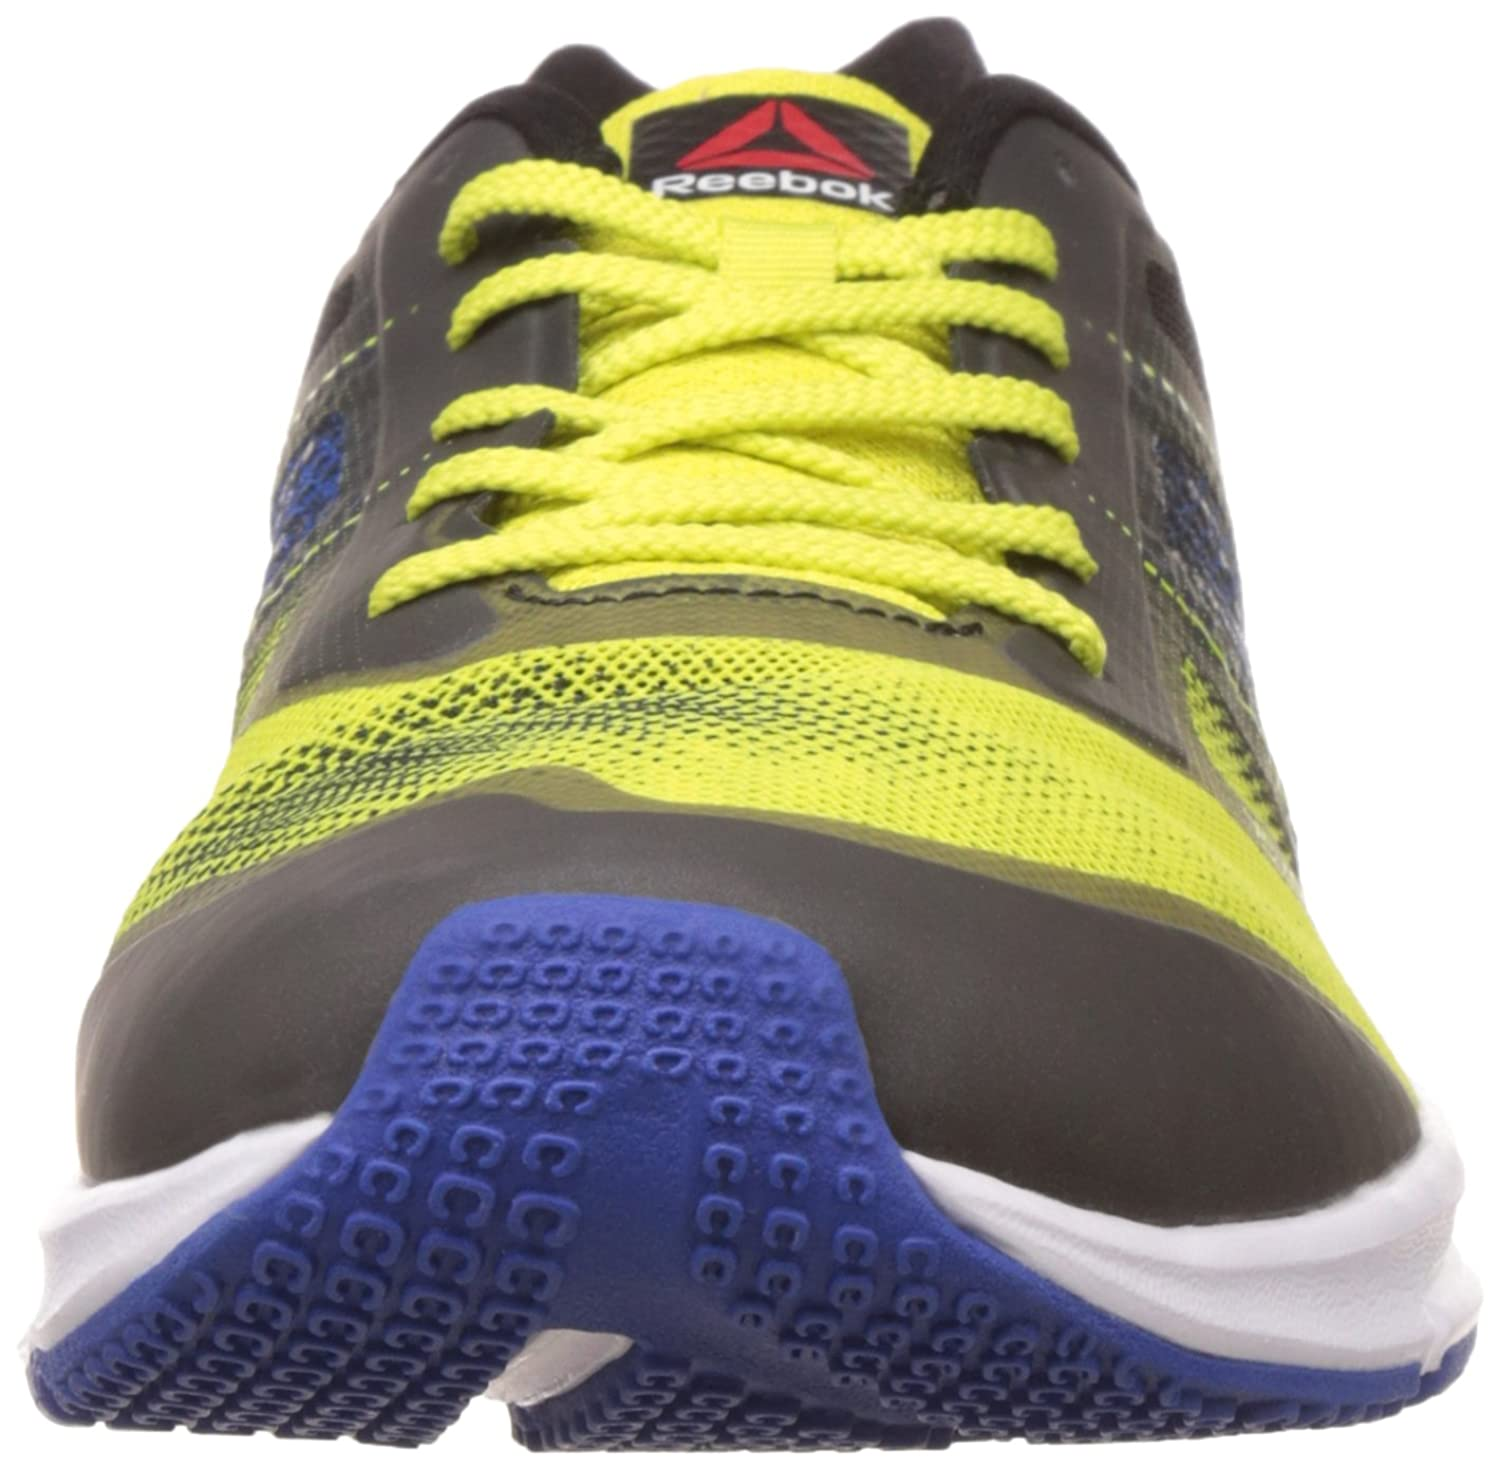 Reebok Men's Quick Win Running Shoes: Buy Online at Low Prices in India -  Amazon.in